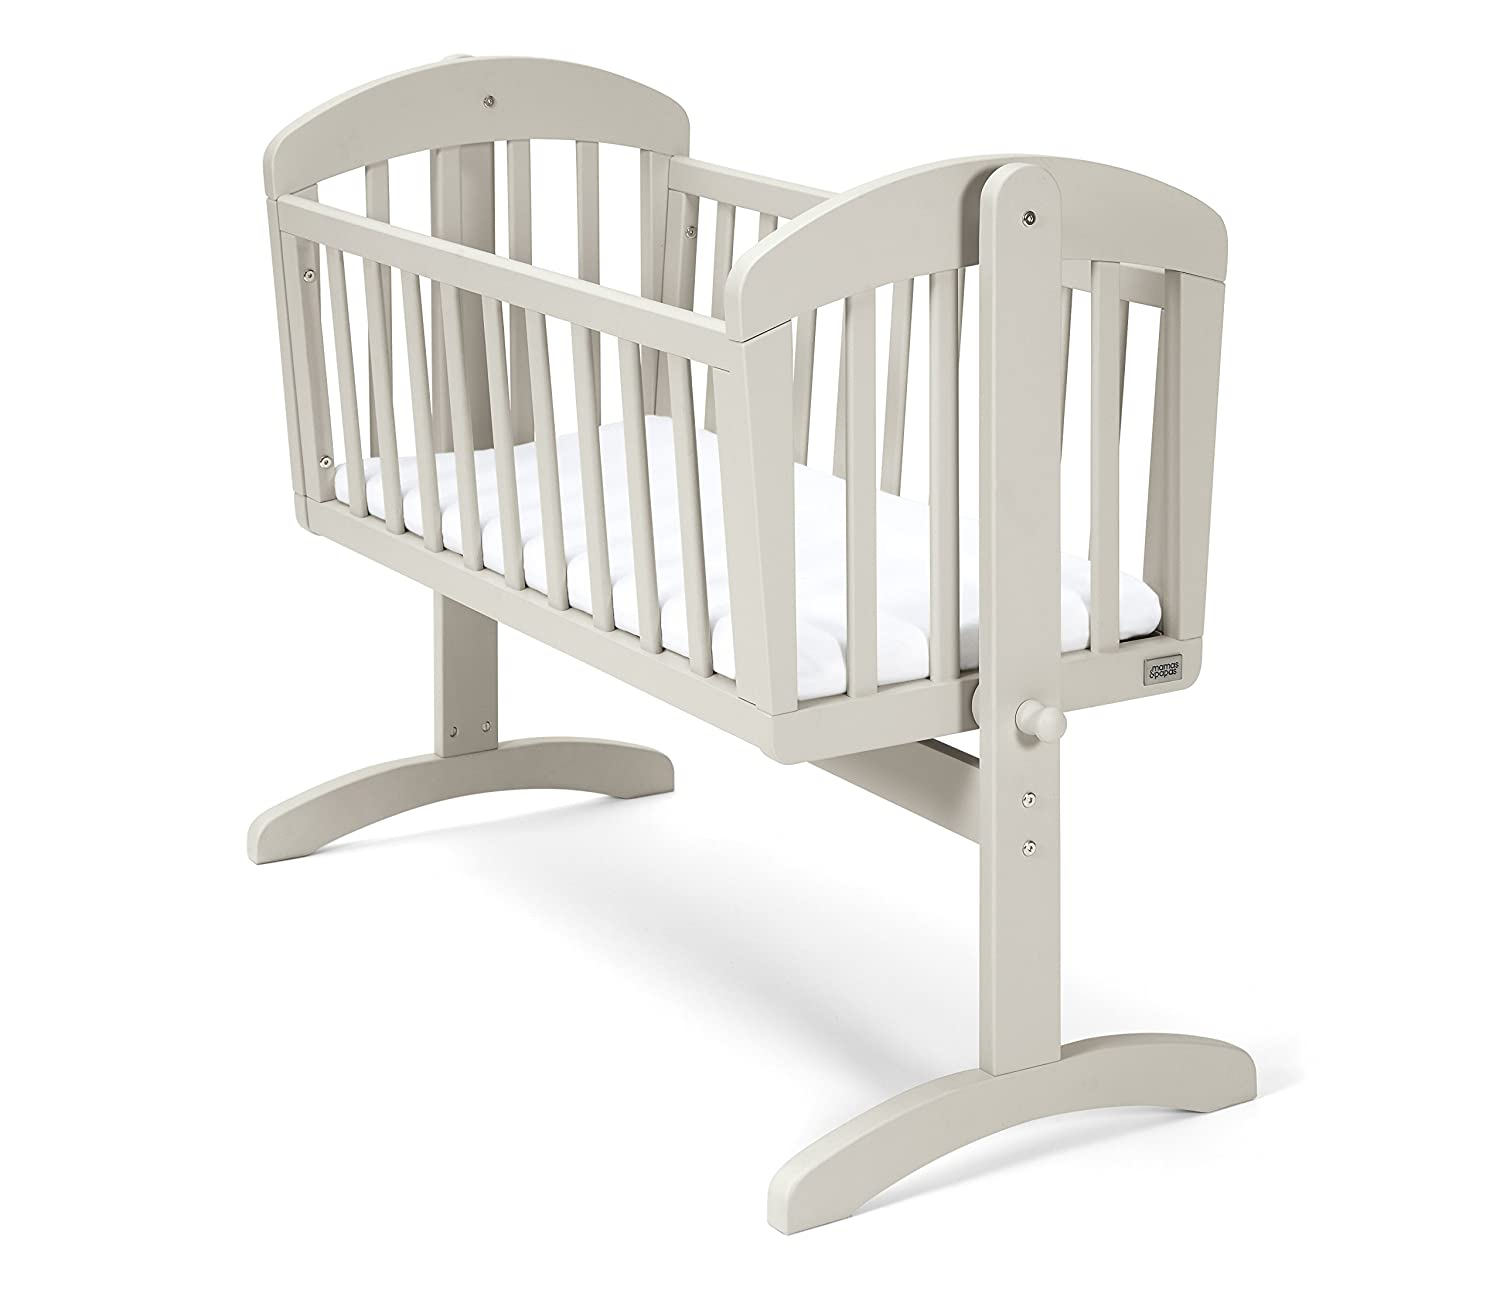 Mamas & Papas Breeze Crib White, Nursery Furniture CRBZ02700